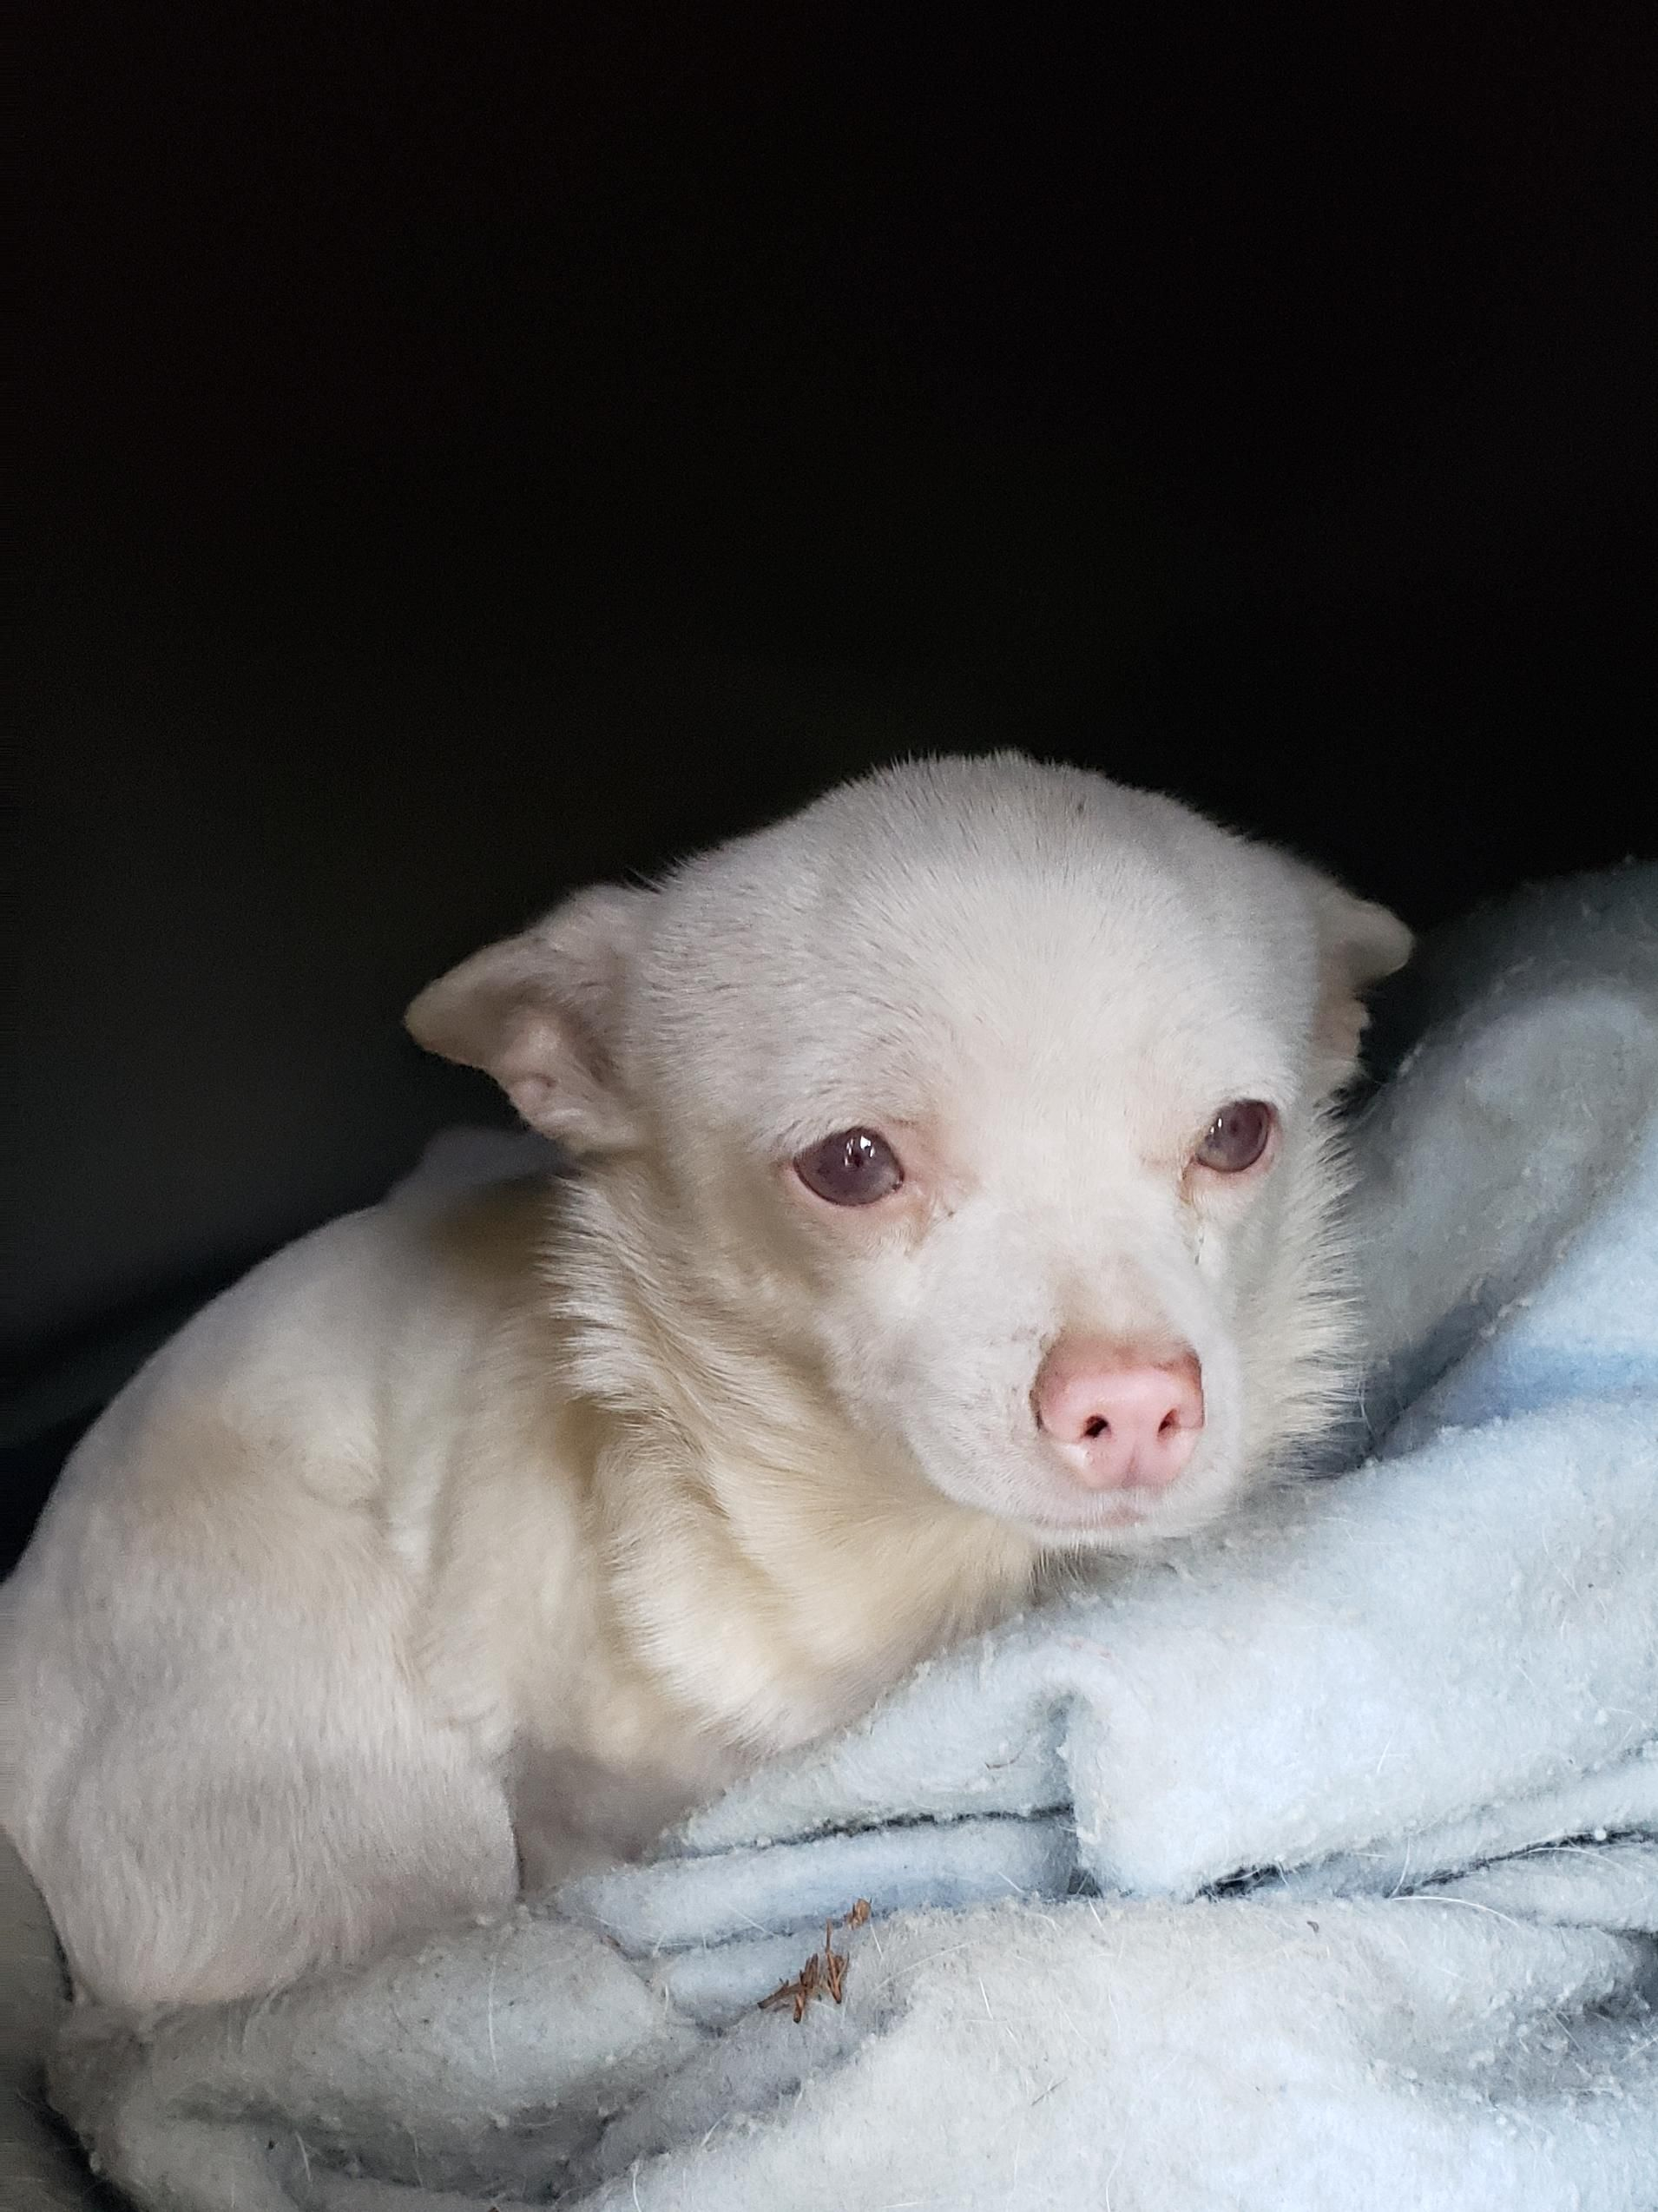 My Albino Chihuahua She Has Blue Eyes In This Picture But